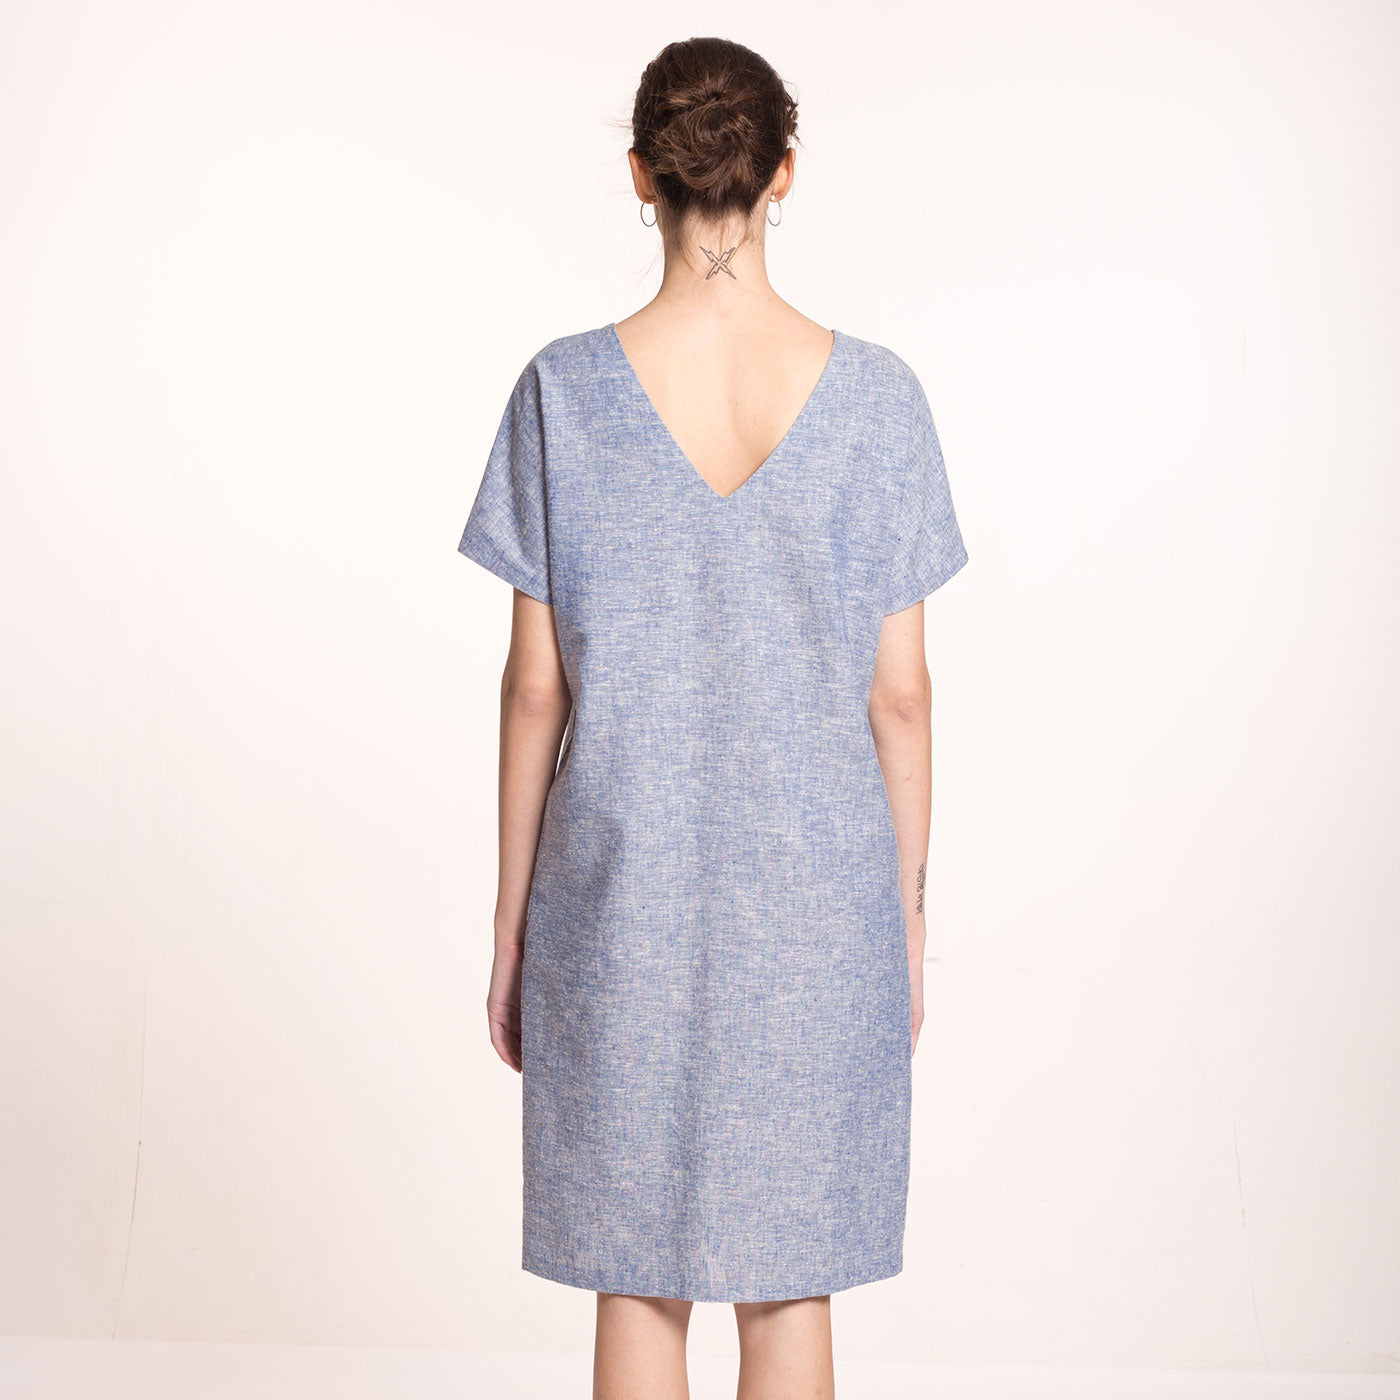 The model wears a light blue, sustainable, organic cotton and hemp dress, with short sleeves and V-neck at the back.